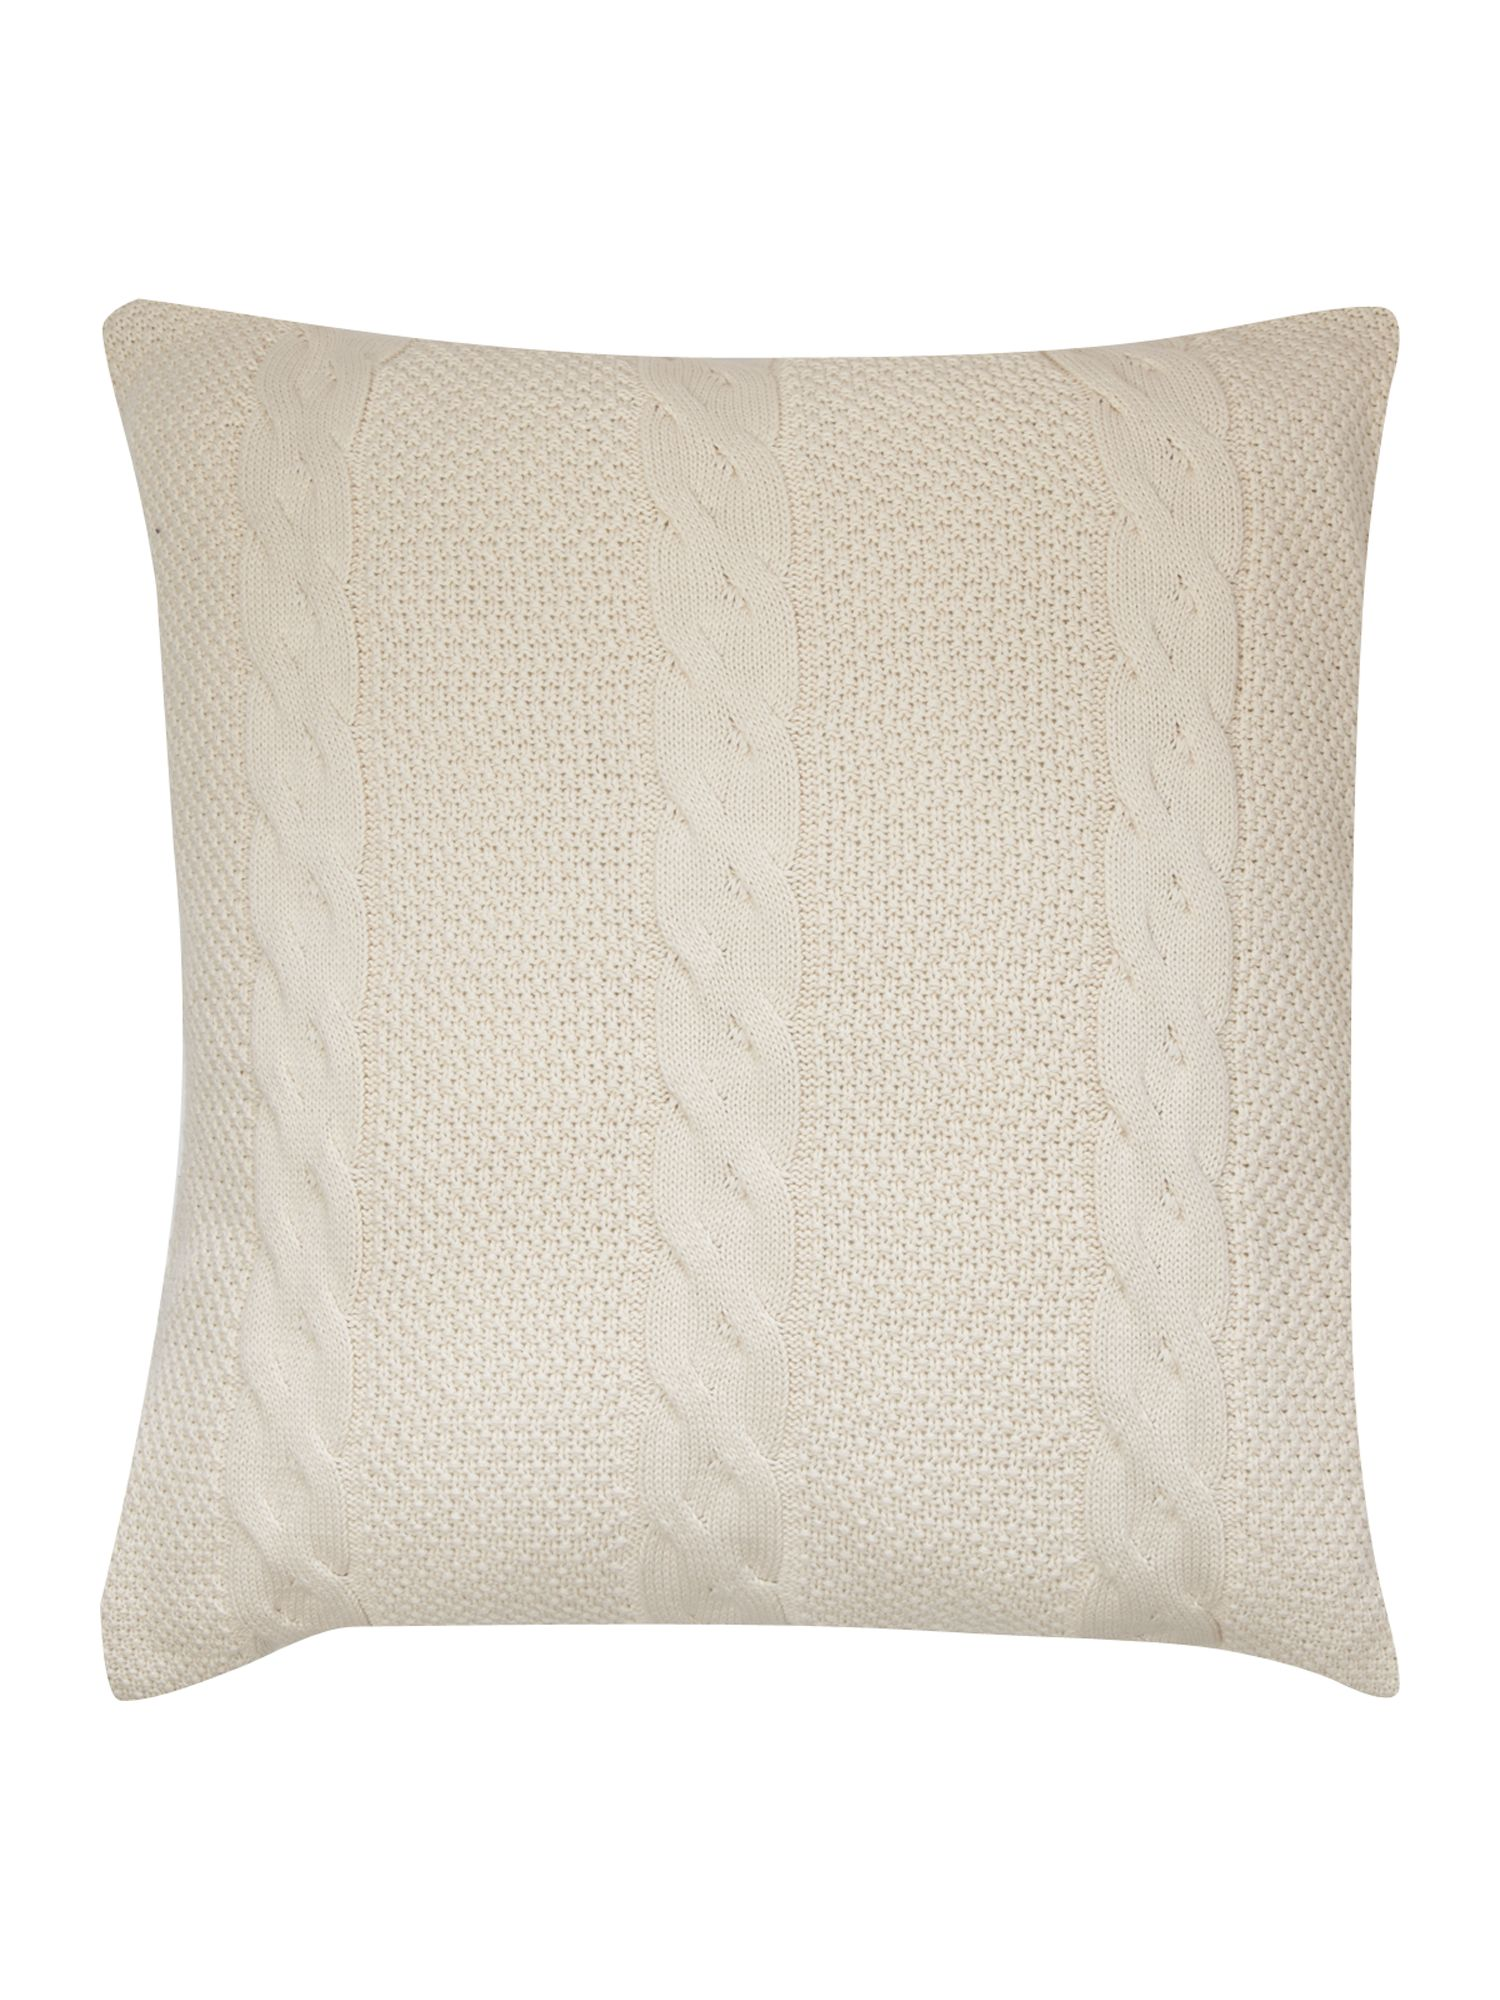 Plaited Knit cushion